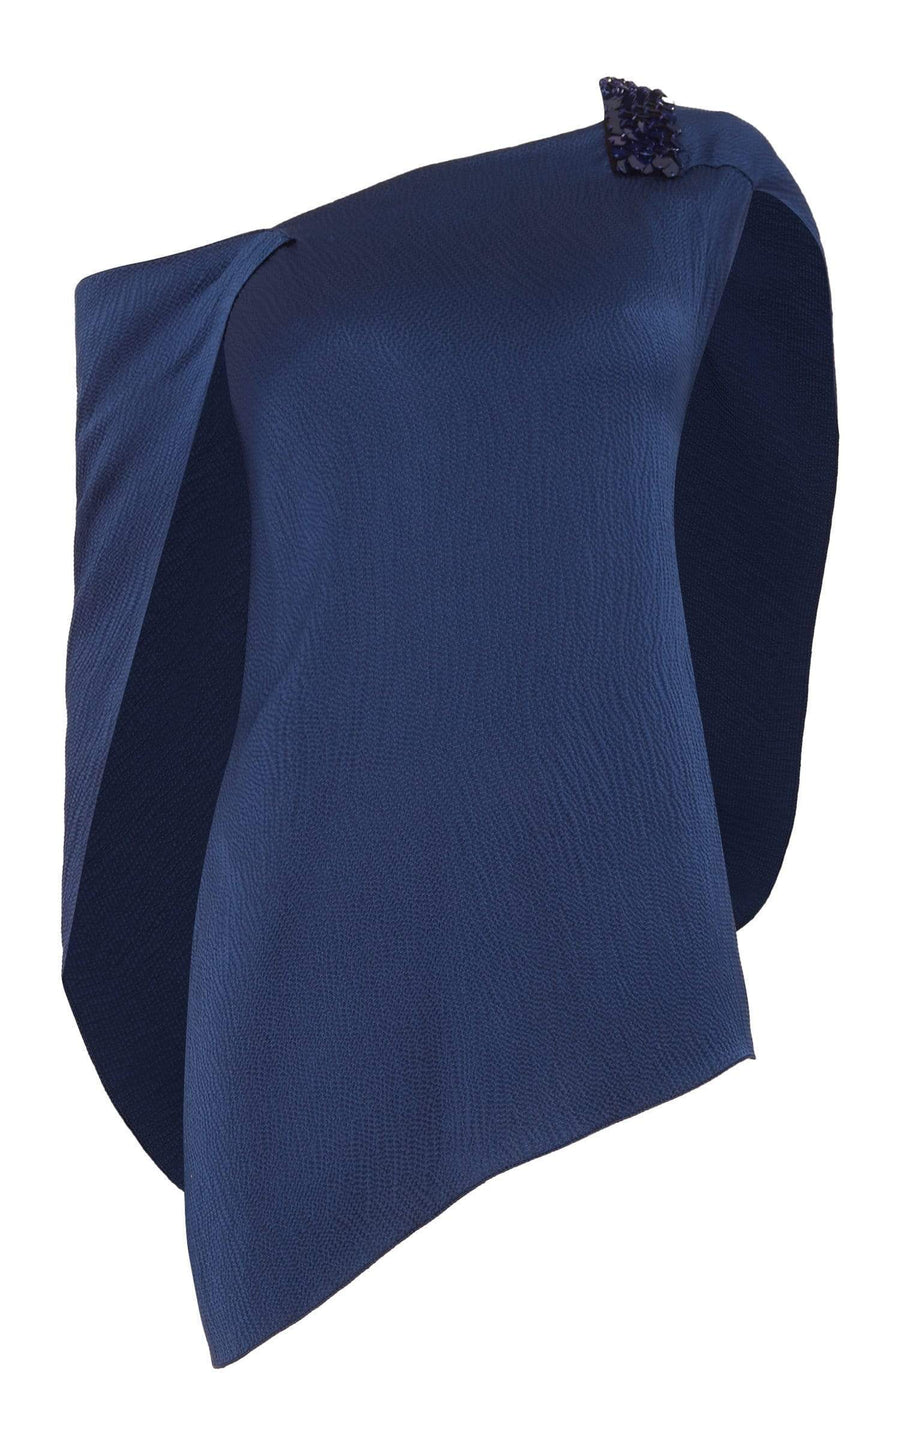 Heartwell Top In Ultramarine from Roland Mouret